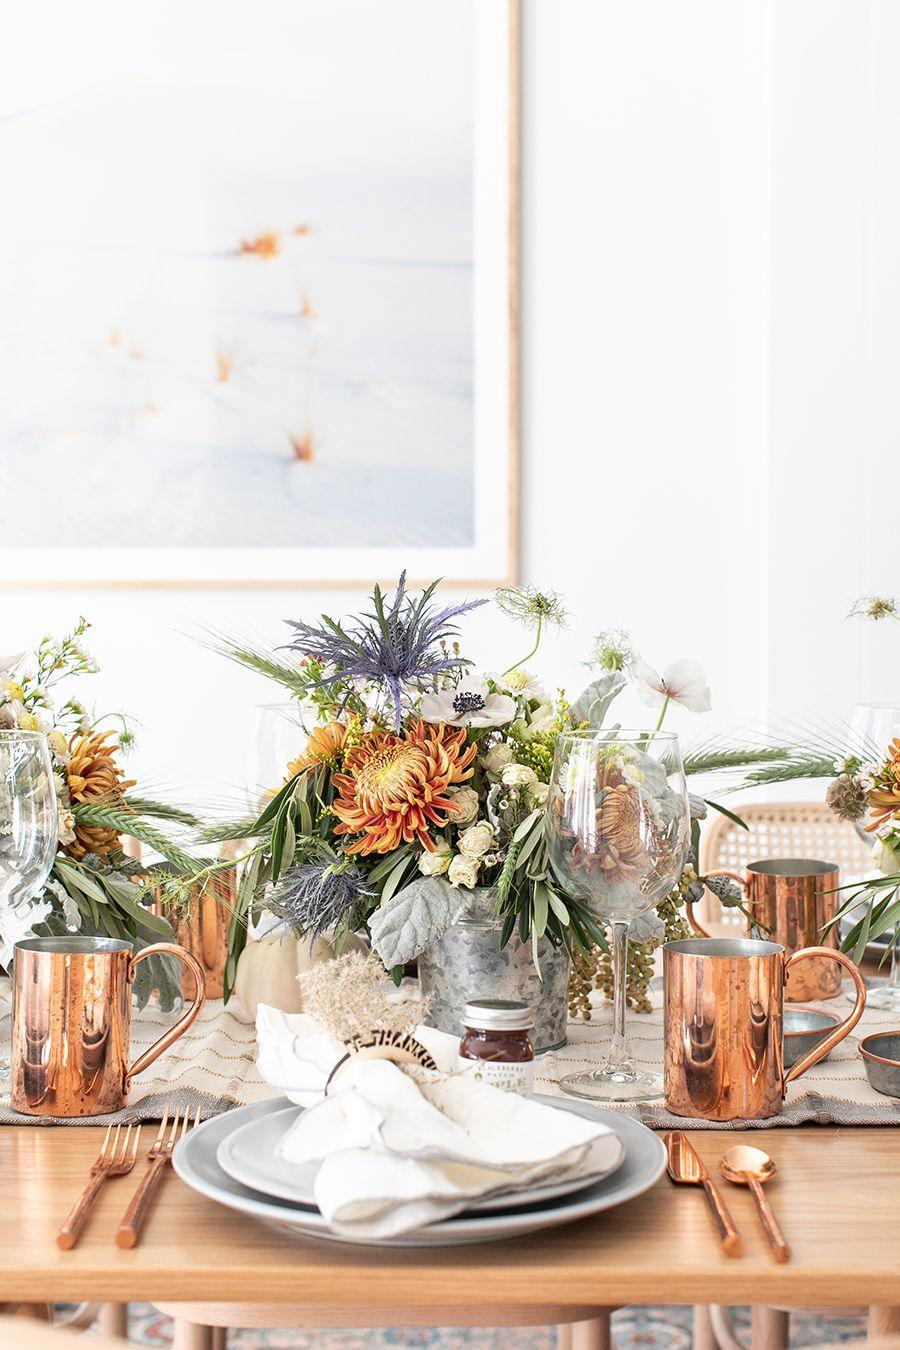 """<p>It's the ultimate rustic-modern table accessory—a galvanized bucket! Simply place your bouquet of choice into one, and watch as your table transforms into a country-chic paradise.</p><p><strong>Get the tutorial at <a href=""""https://sugarandcharm.com/a-rustic-modern-thanksgiving-table-setting"""" rel=""""nofollow noopener"""" target=""""_blank"""" data-ylk=""""slk:Sugar and Charm"""" class=""""link rapid-noclick-resp"""">Sugar and Charm</a>.</strong></p><p><a class=""""link rapid-noclick-resp"""" href=""""https://www.amazon.com/Mini-Metal-Buckets-Count-Packs/dp/B016C9XUC2?tag=syn-yahoo-20&ascsubtag=%5Bartid%7C10050.g.2130%5Bsrc%7Cyahoo-us"""" rel=""""nofollow noopener"""" target=""""_blank"""" data-ylk=""""slk:SHOP GALVANIZED BUCKETS"""">SHOP GALVANIZED BUCKETS</a></p>"""